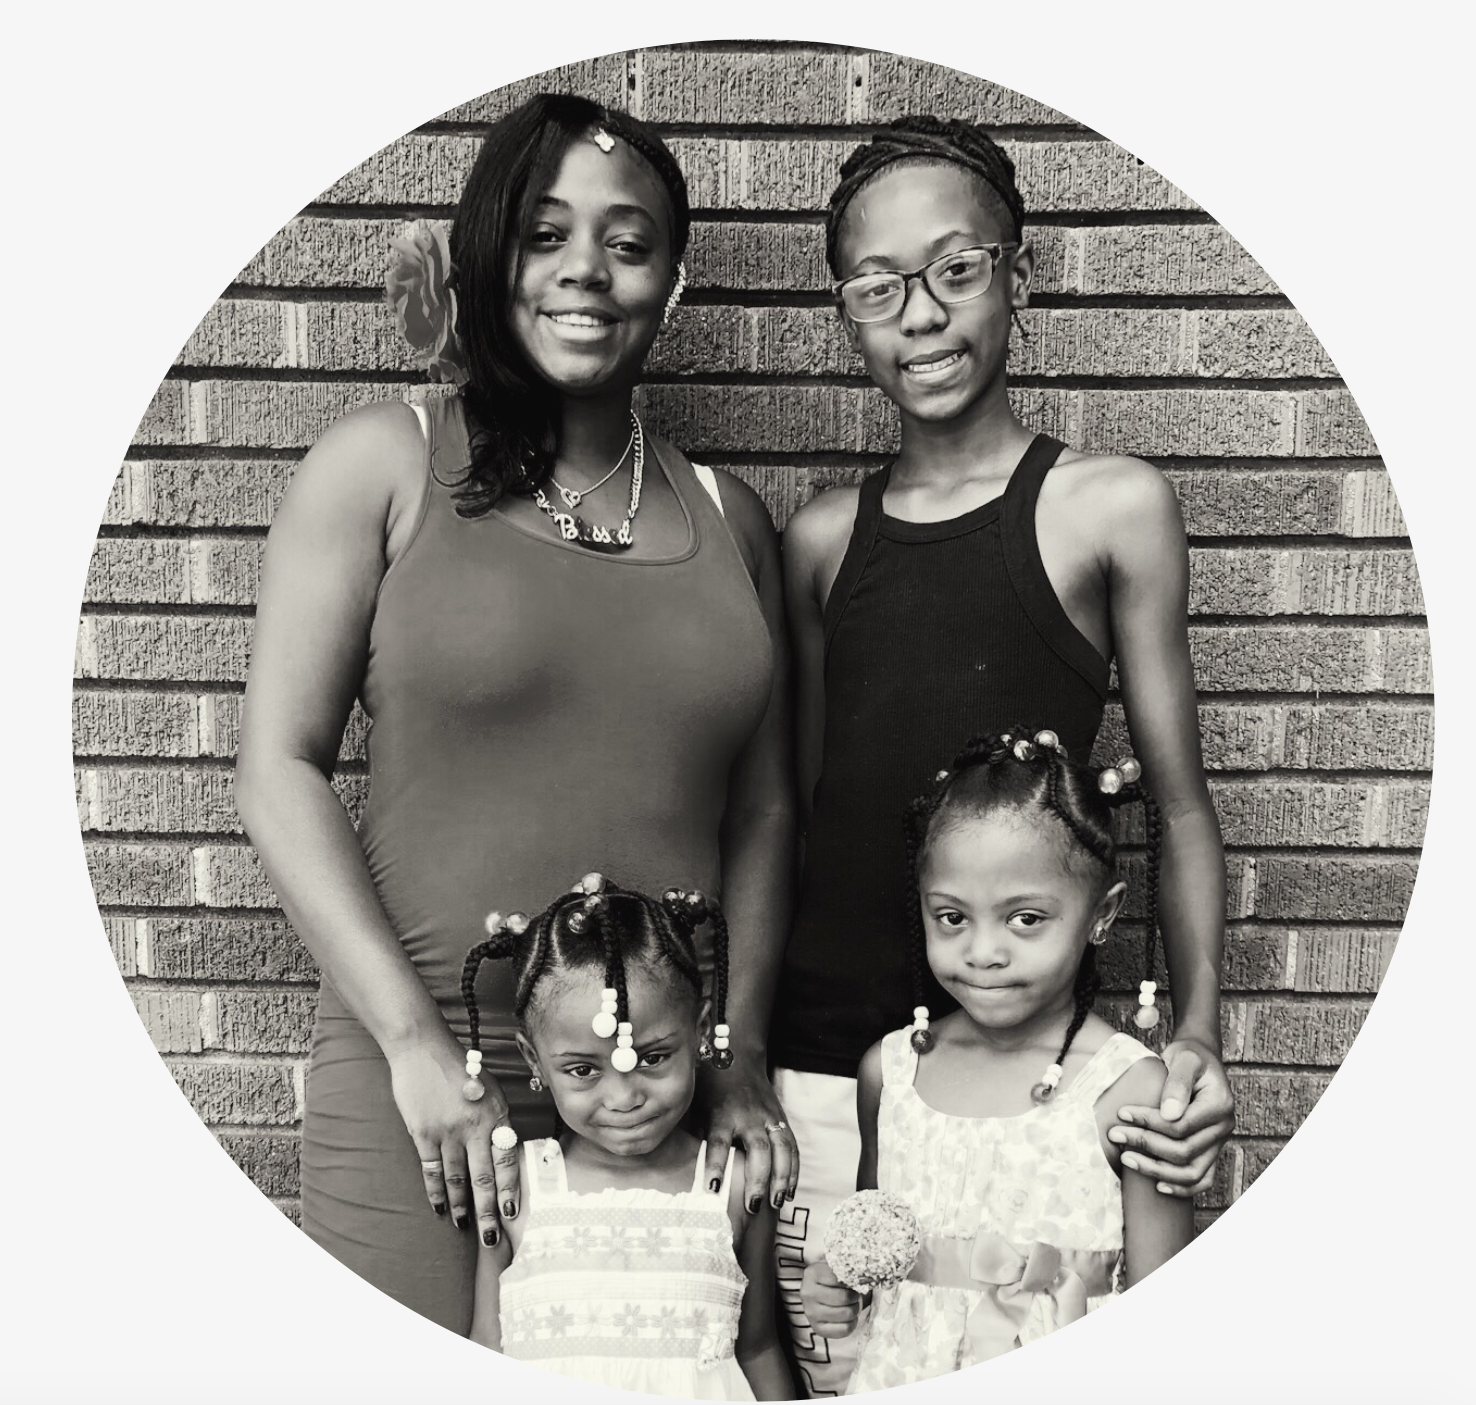 Erica Jones & her children keep our Food Bank running by volunteering their time and hard work 3 days a week to serve the Denver Community!